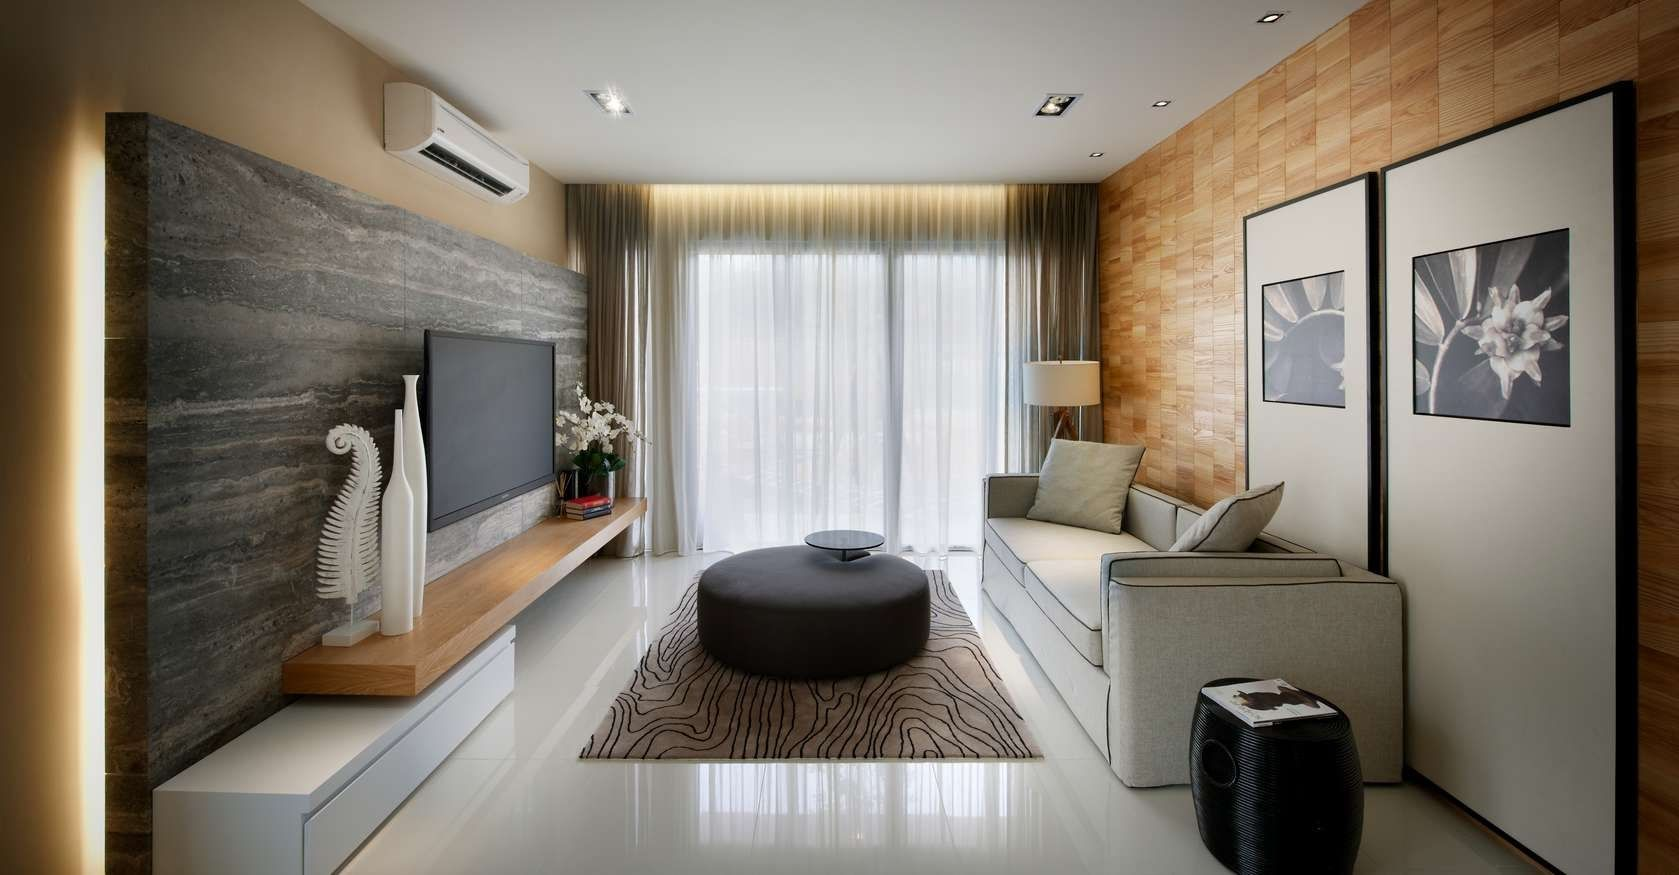 Kuala lumpur apartment project vale from blu water studio contemporary interiors infused with a colorful zest